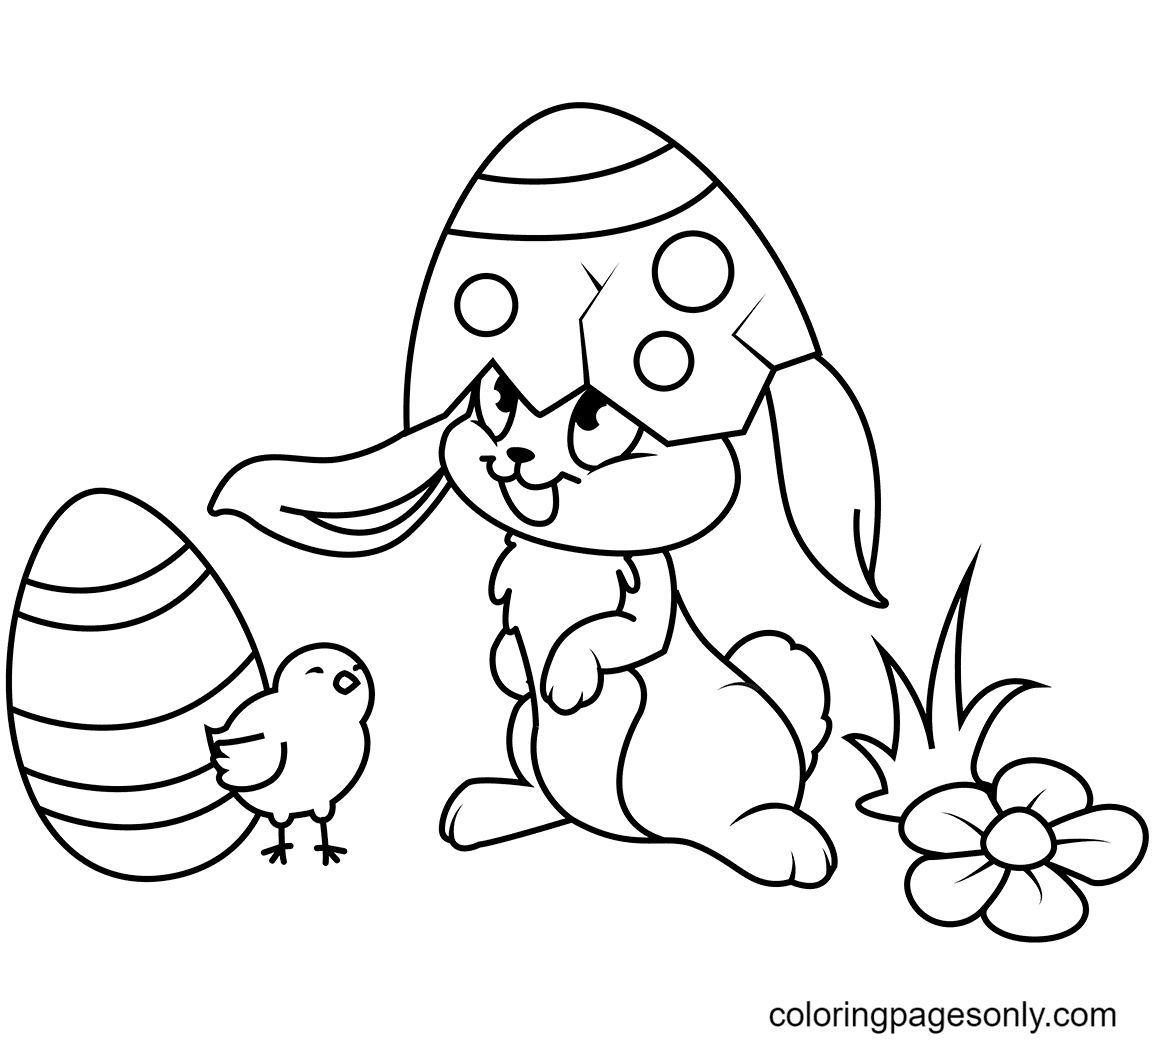 Cute Easter Chick and Bunny Coloring Page